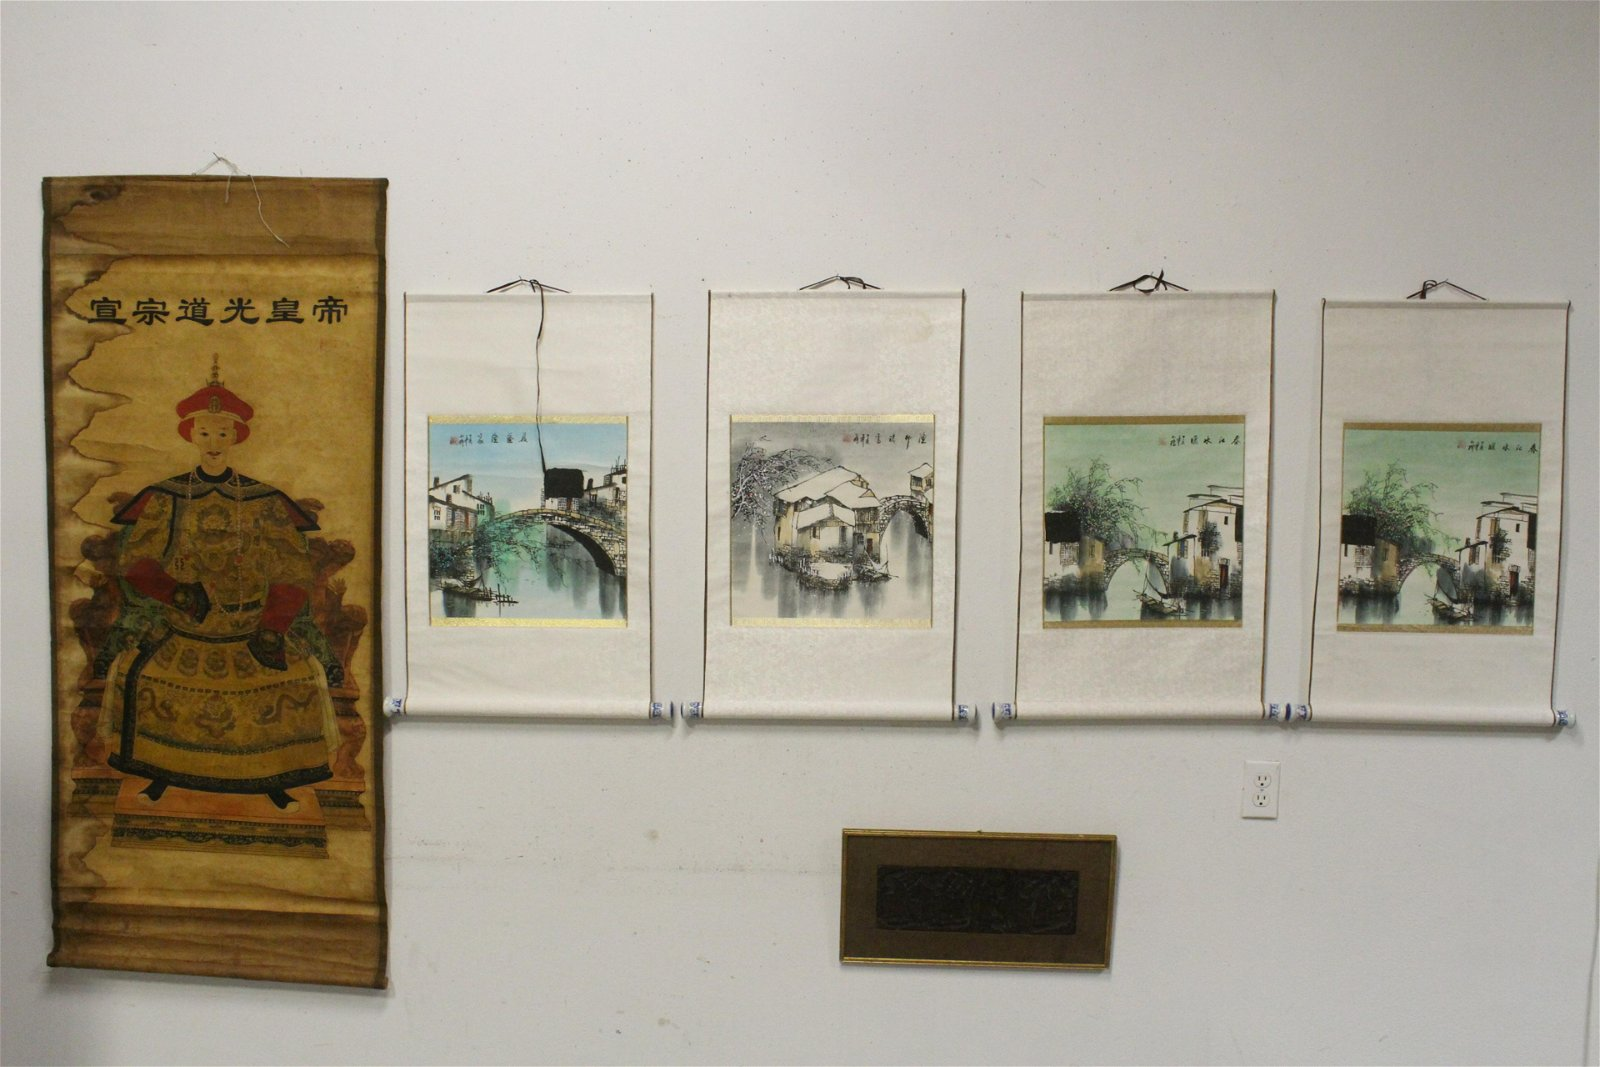 5 print scrolls, and a wood carved panel